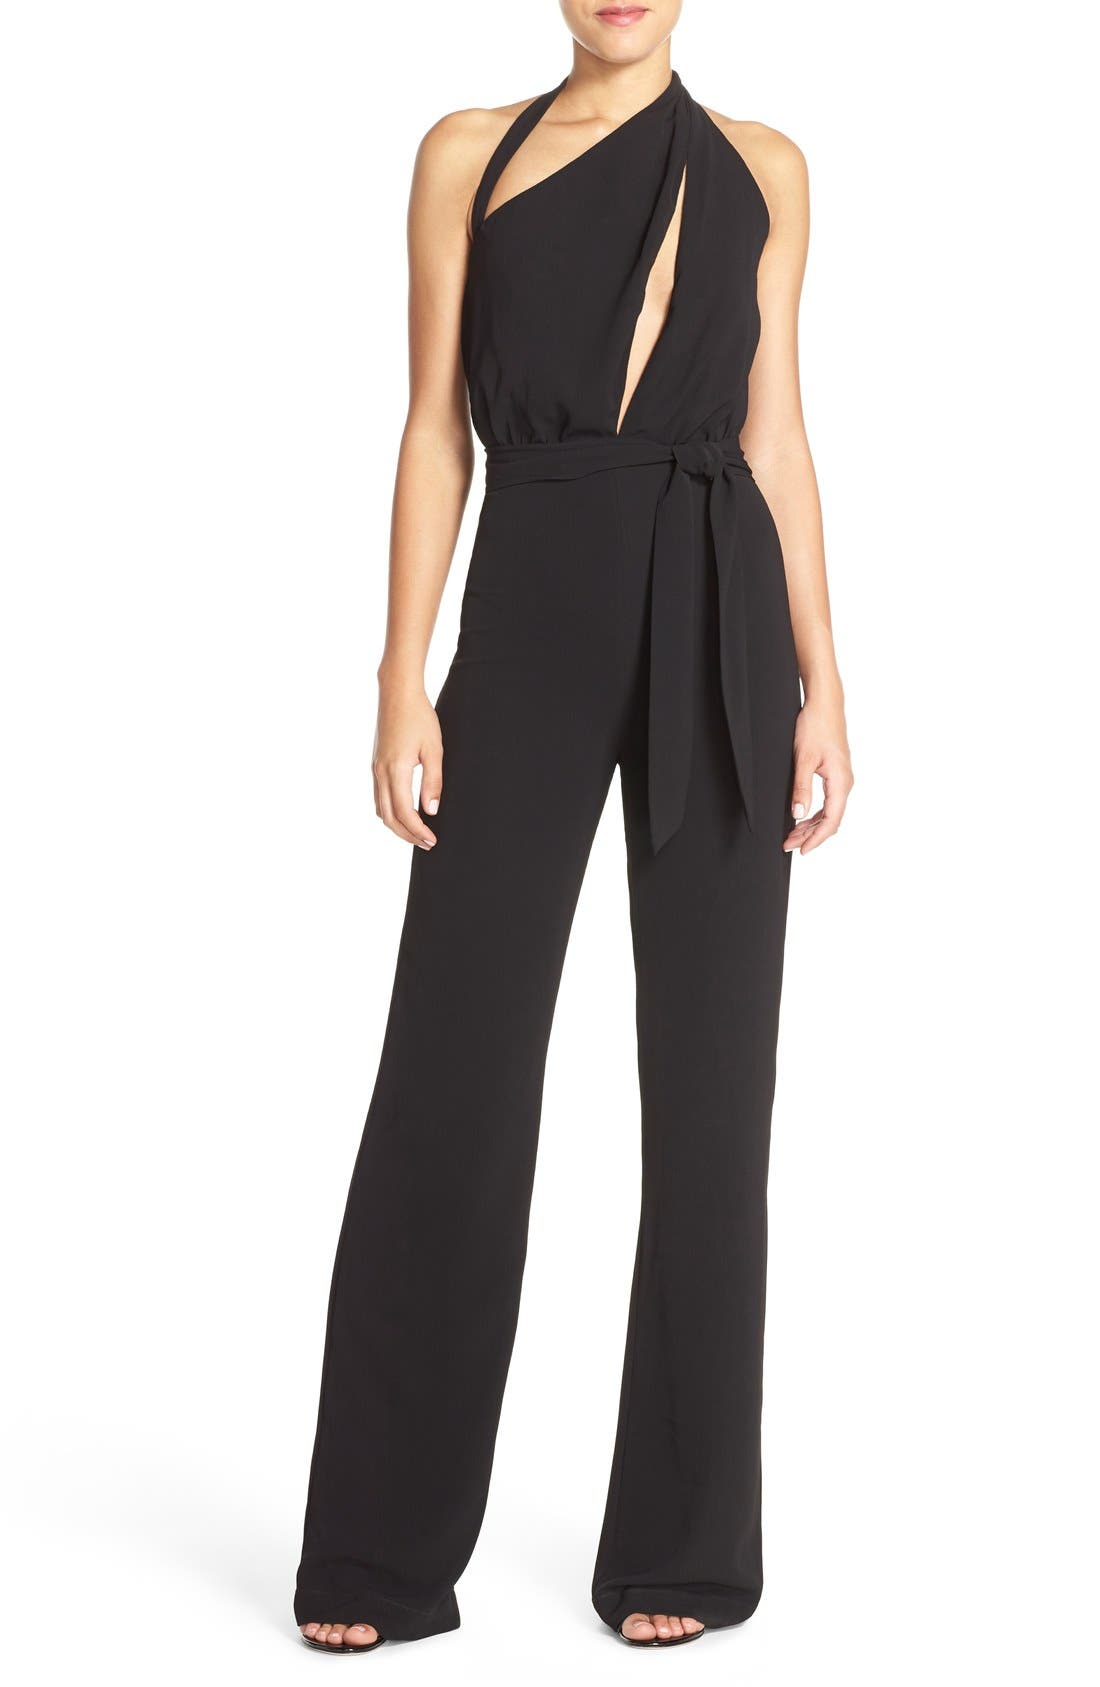 Main Image - Misha Collection 'Caprice' Cutout Halter Jumpsuit